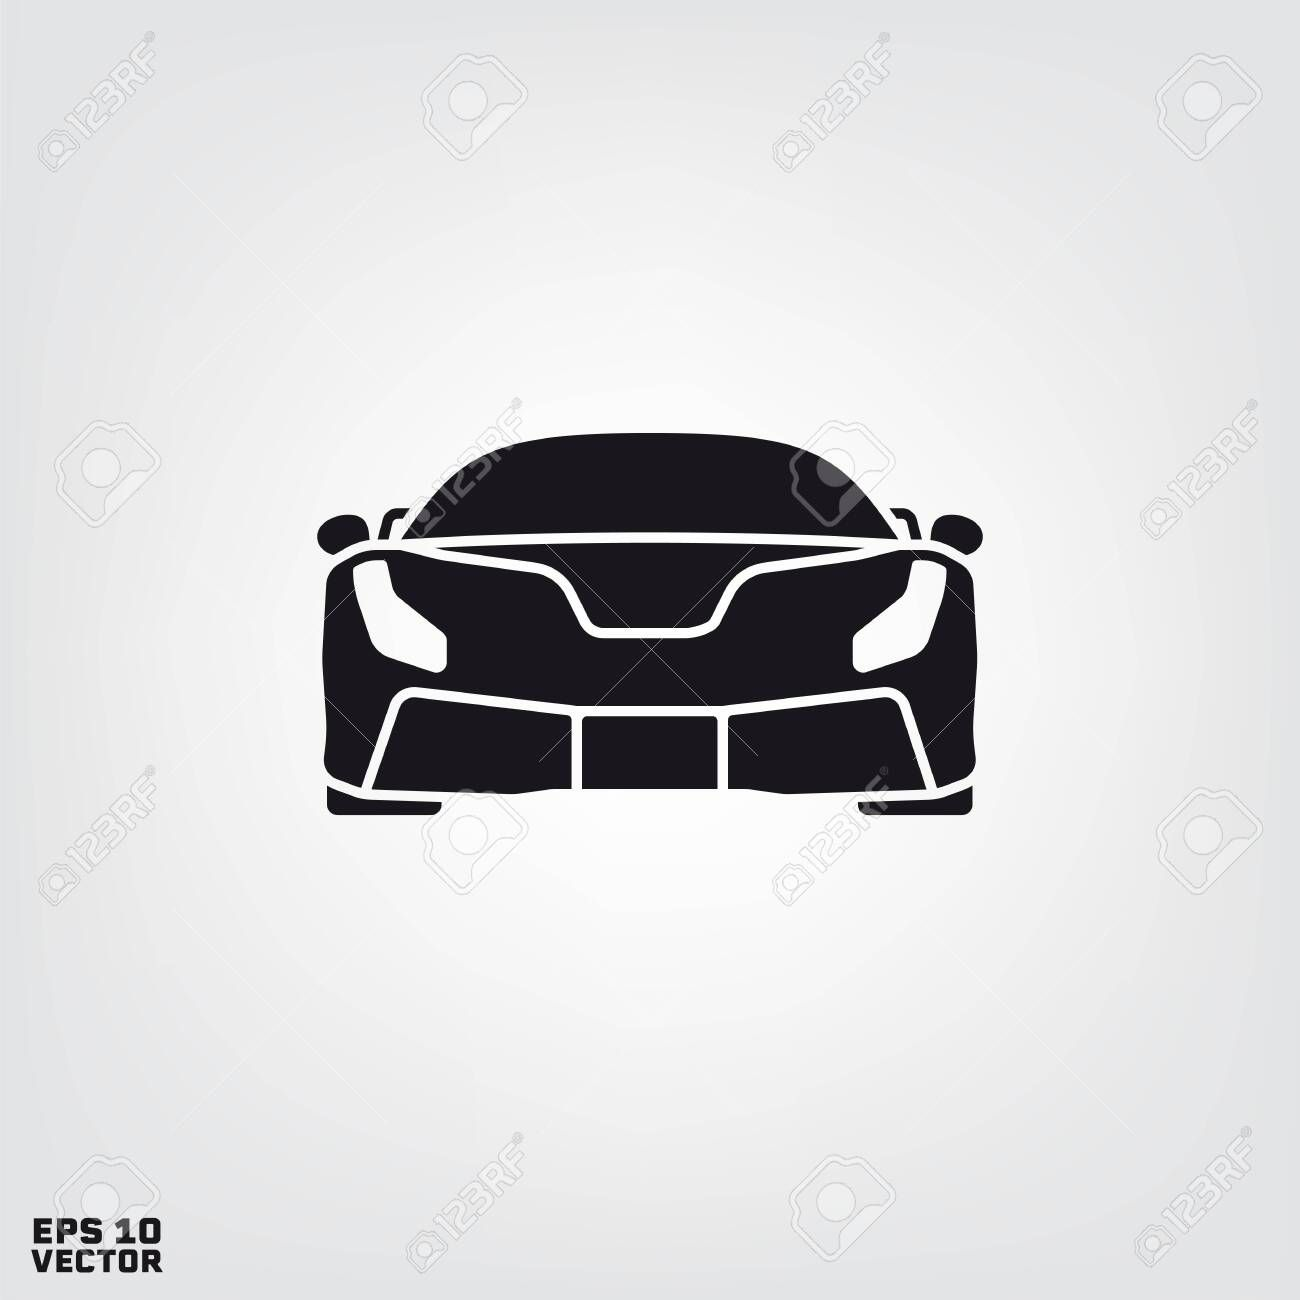 Sports Car Front View Silhouette Vector Illustration Illustration Sponsored Front View Sports Car Silhouette Vector Vector Illustration Illustration